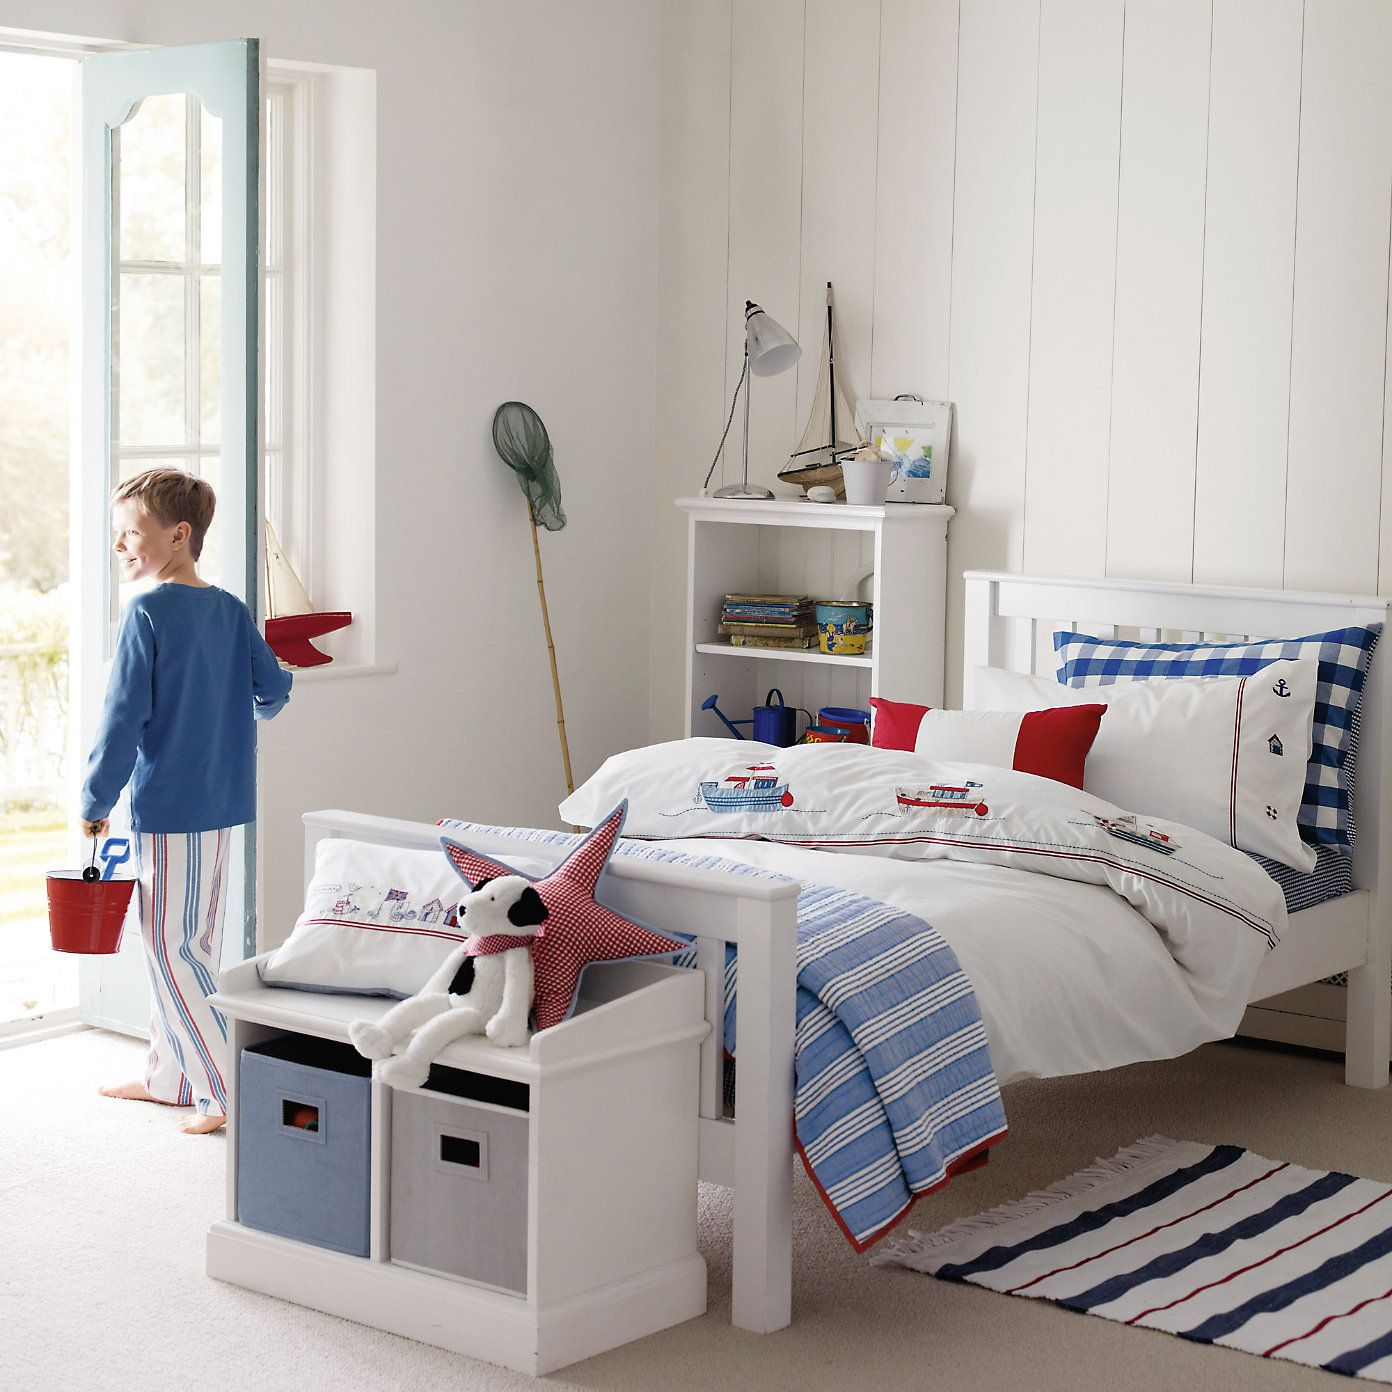 buy the little white company  u0026gt  childrens bedroom  u0026gt  stripe fringe rug from the white company